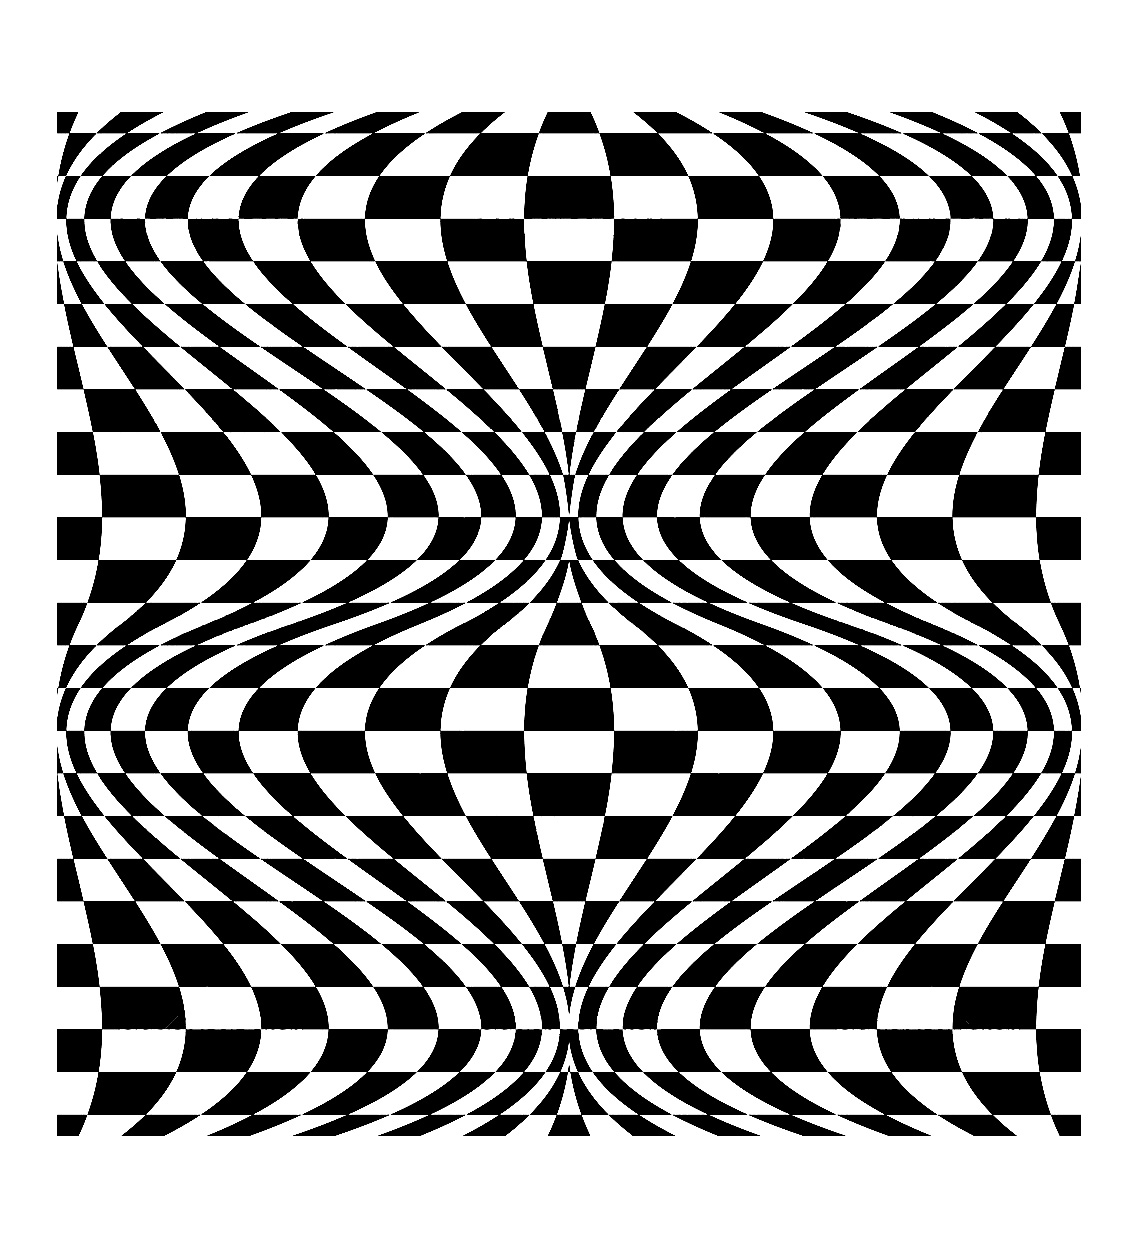 Op art illusion optique 2 art optique coloriages difficiles pour adultes - Mini coloriage illusion d optique ...